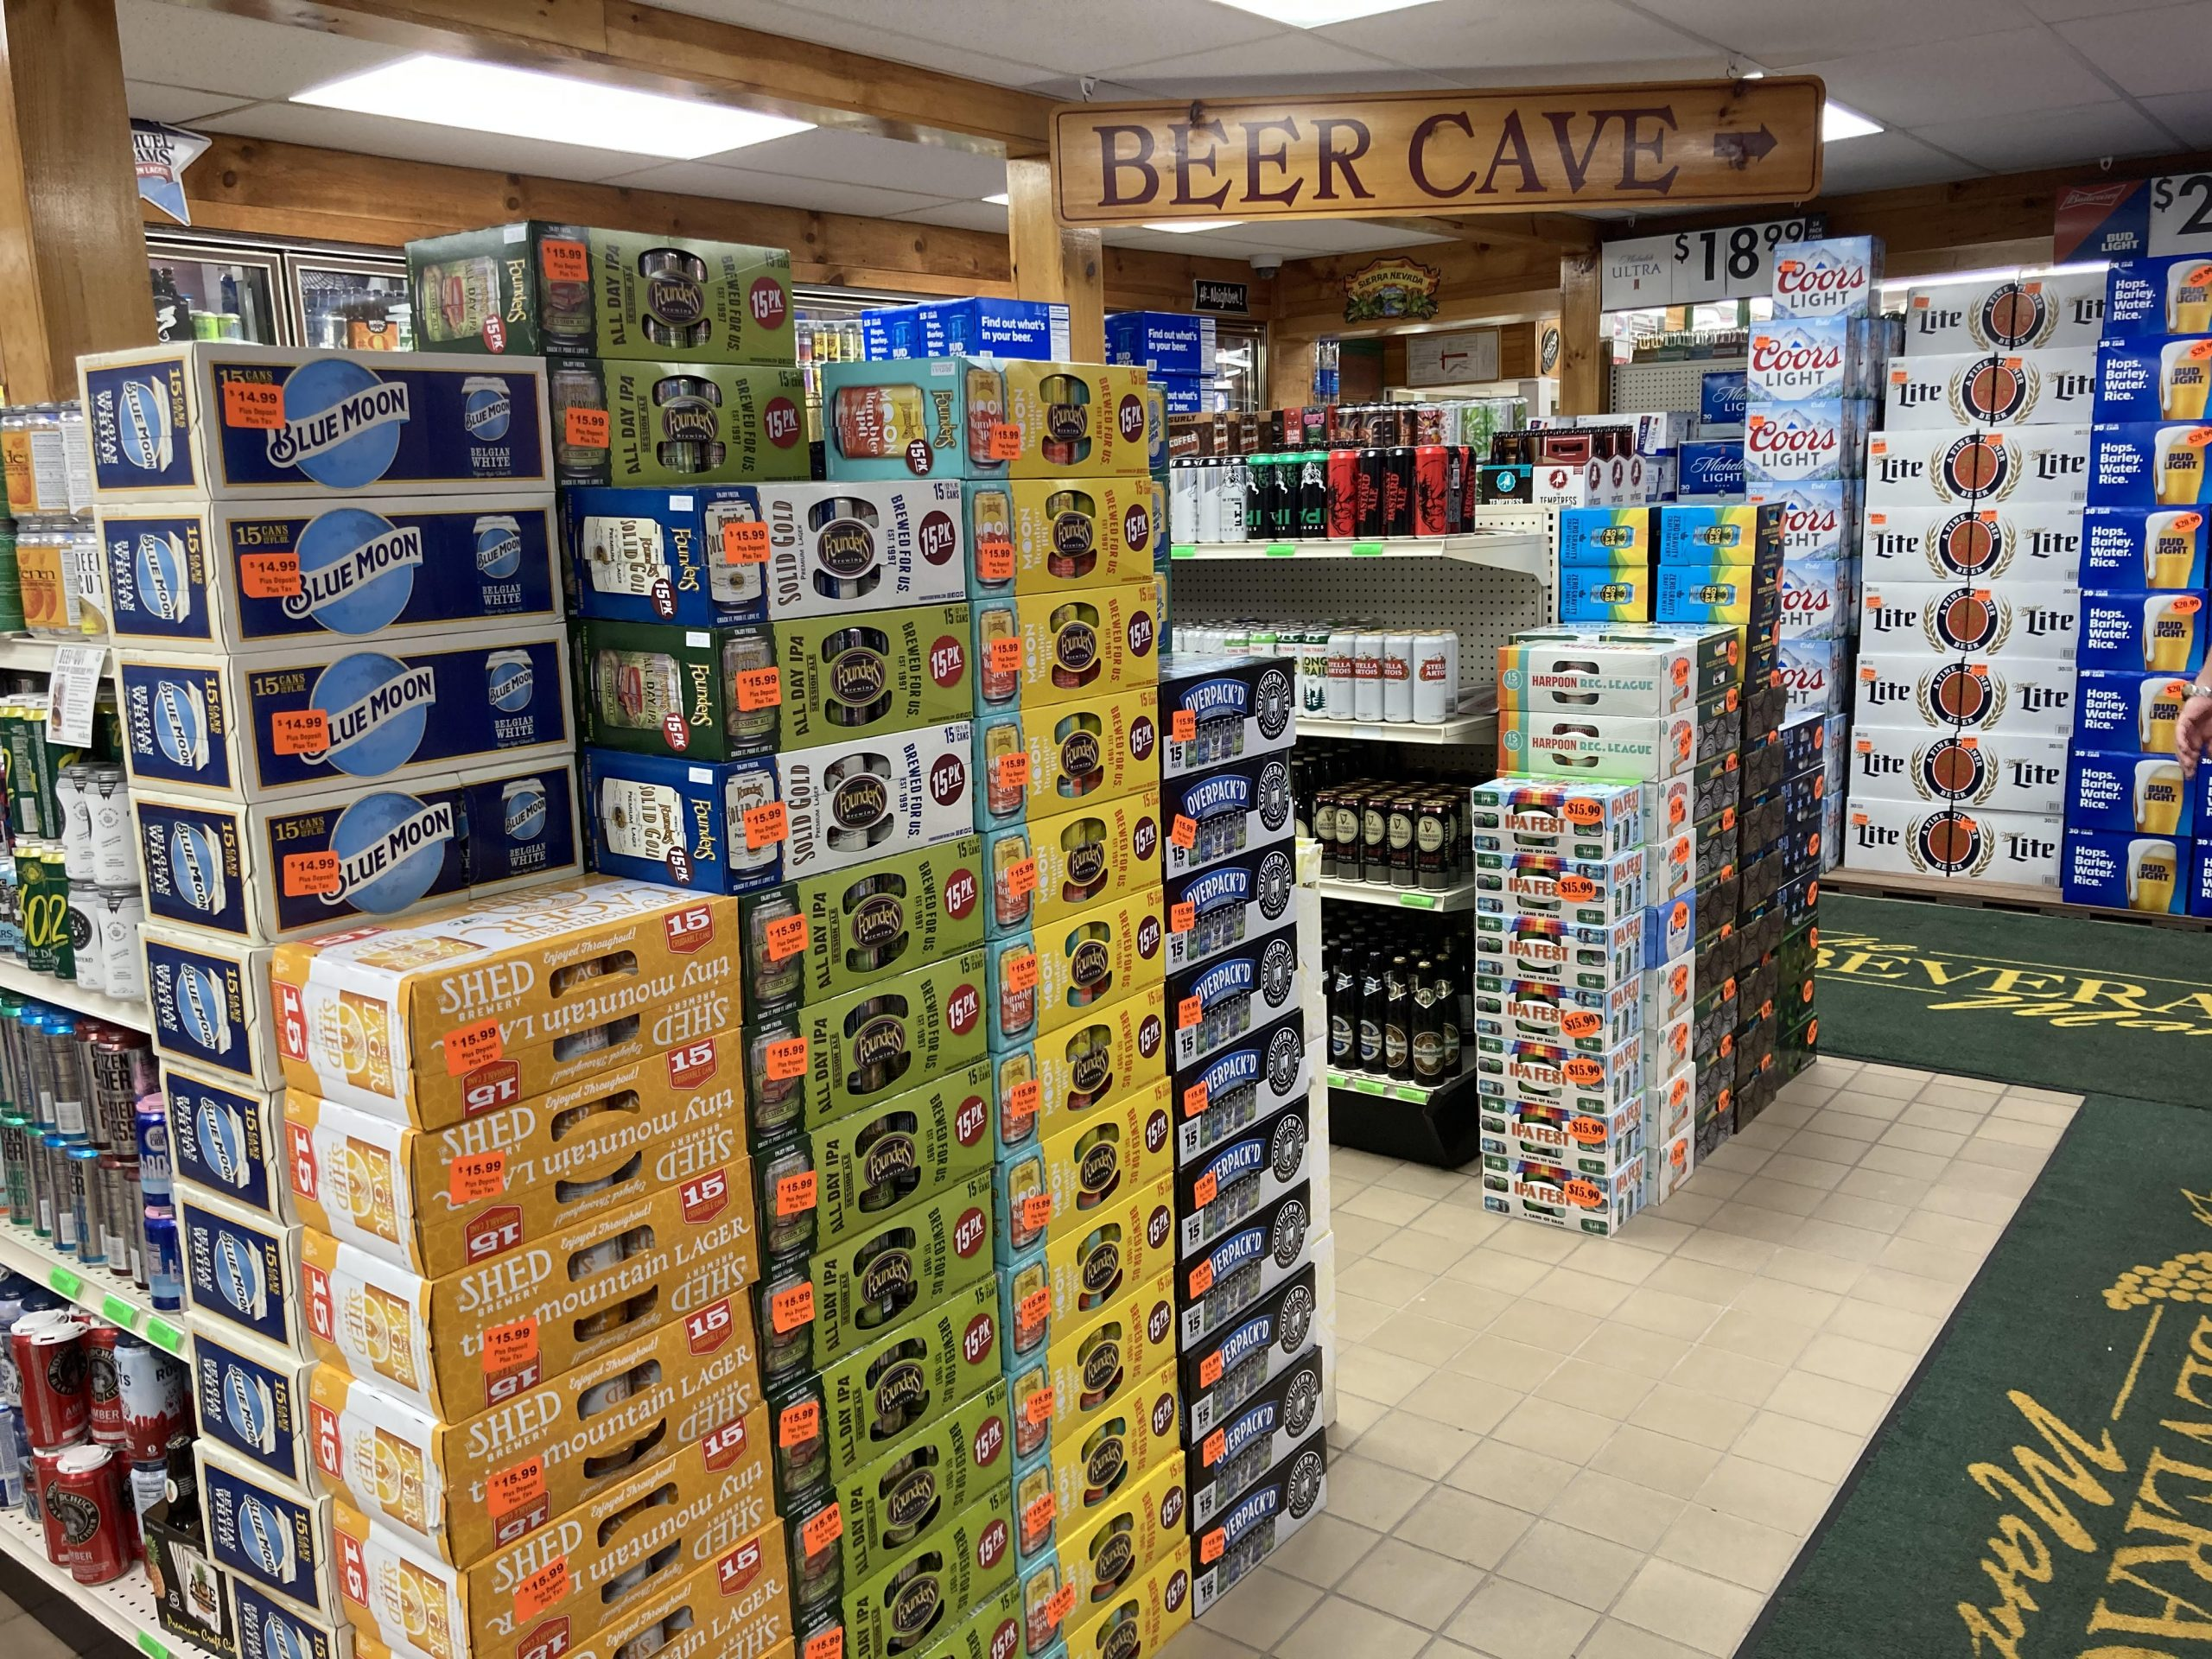 Beer Cave at Beverage Mart in St. Albans, Vermont